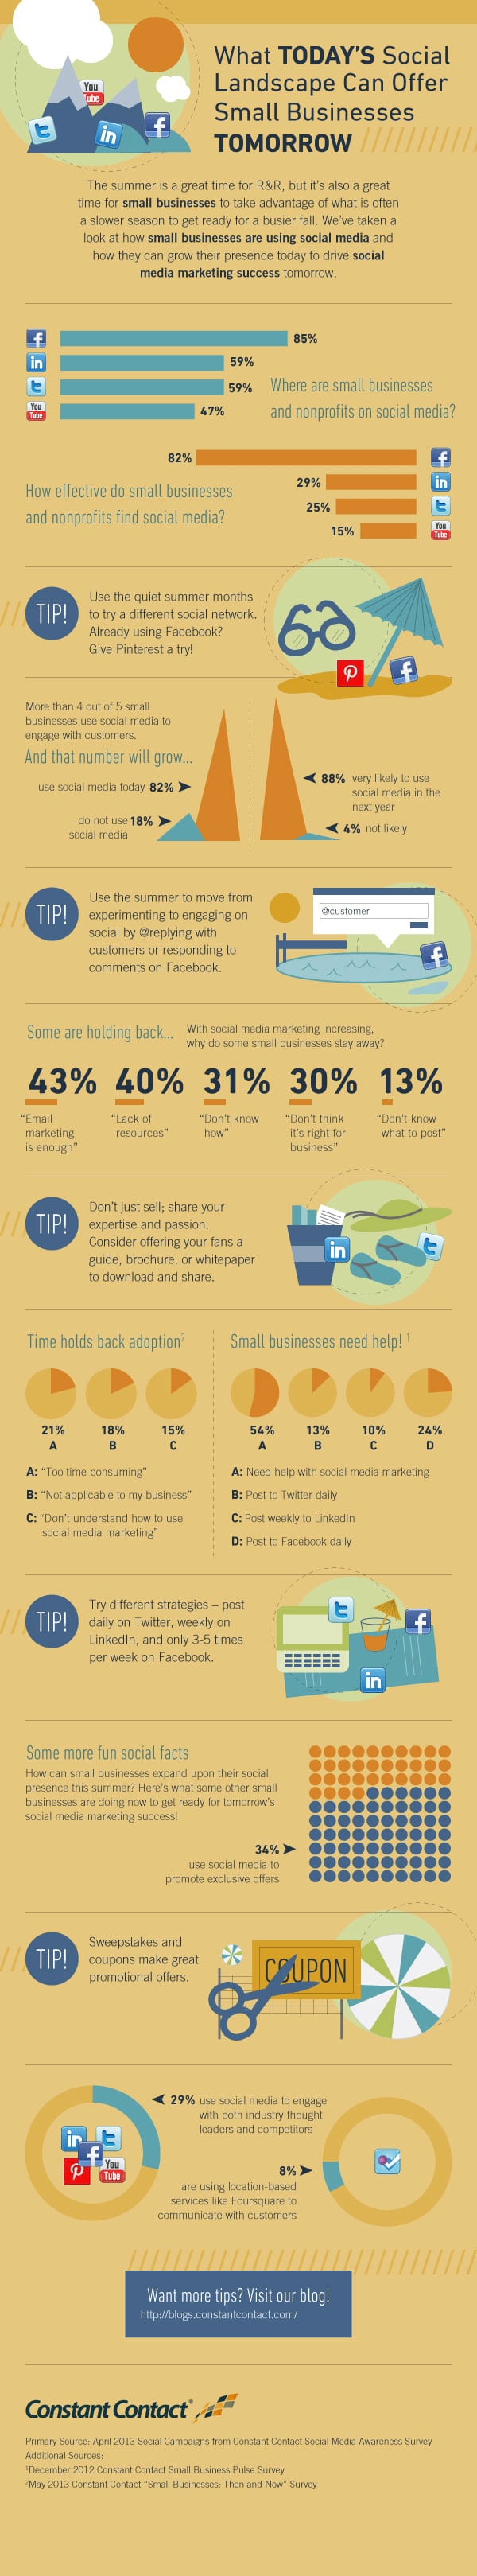 Summer Social Media Tips To Help You Get Ready For Fall [Infographic]